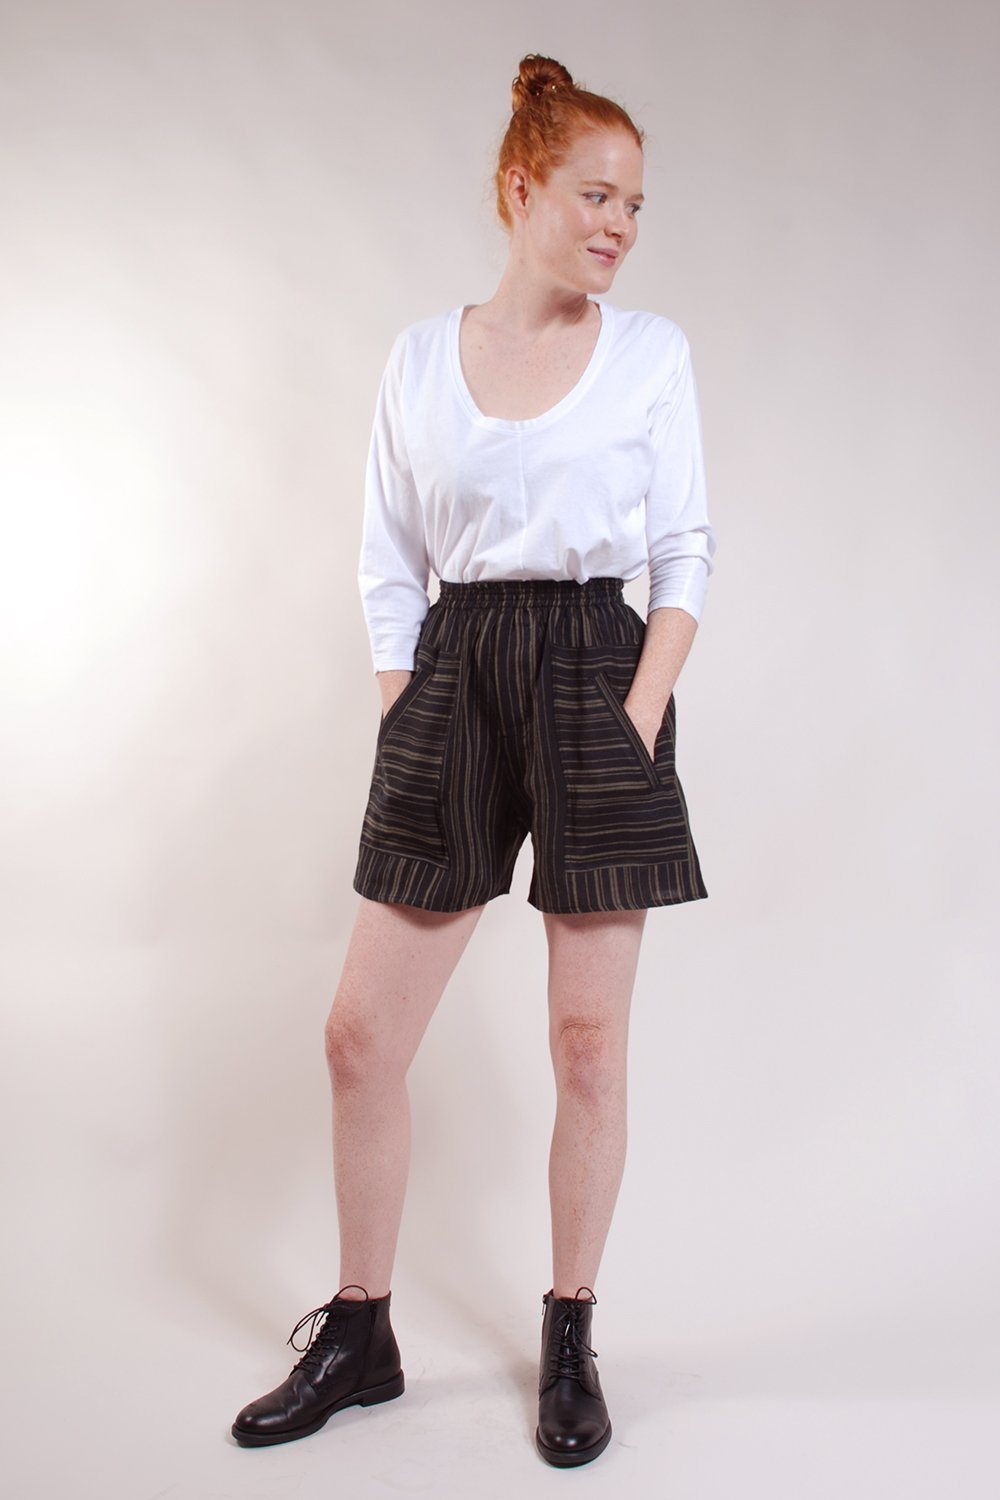 Elastic waist, welt patch pockets, center back gusset. 100% Linen. Black with Olive stripes.